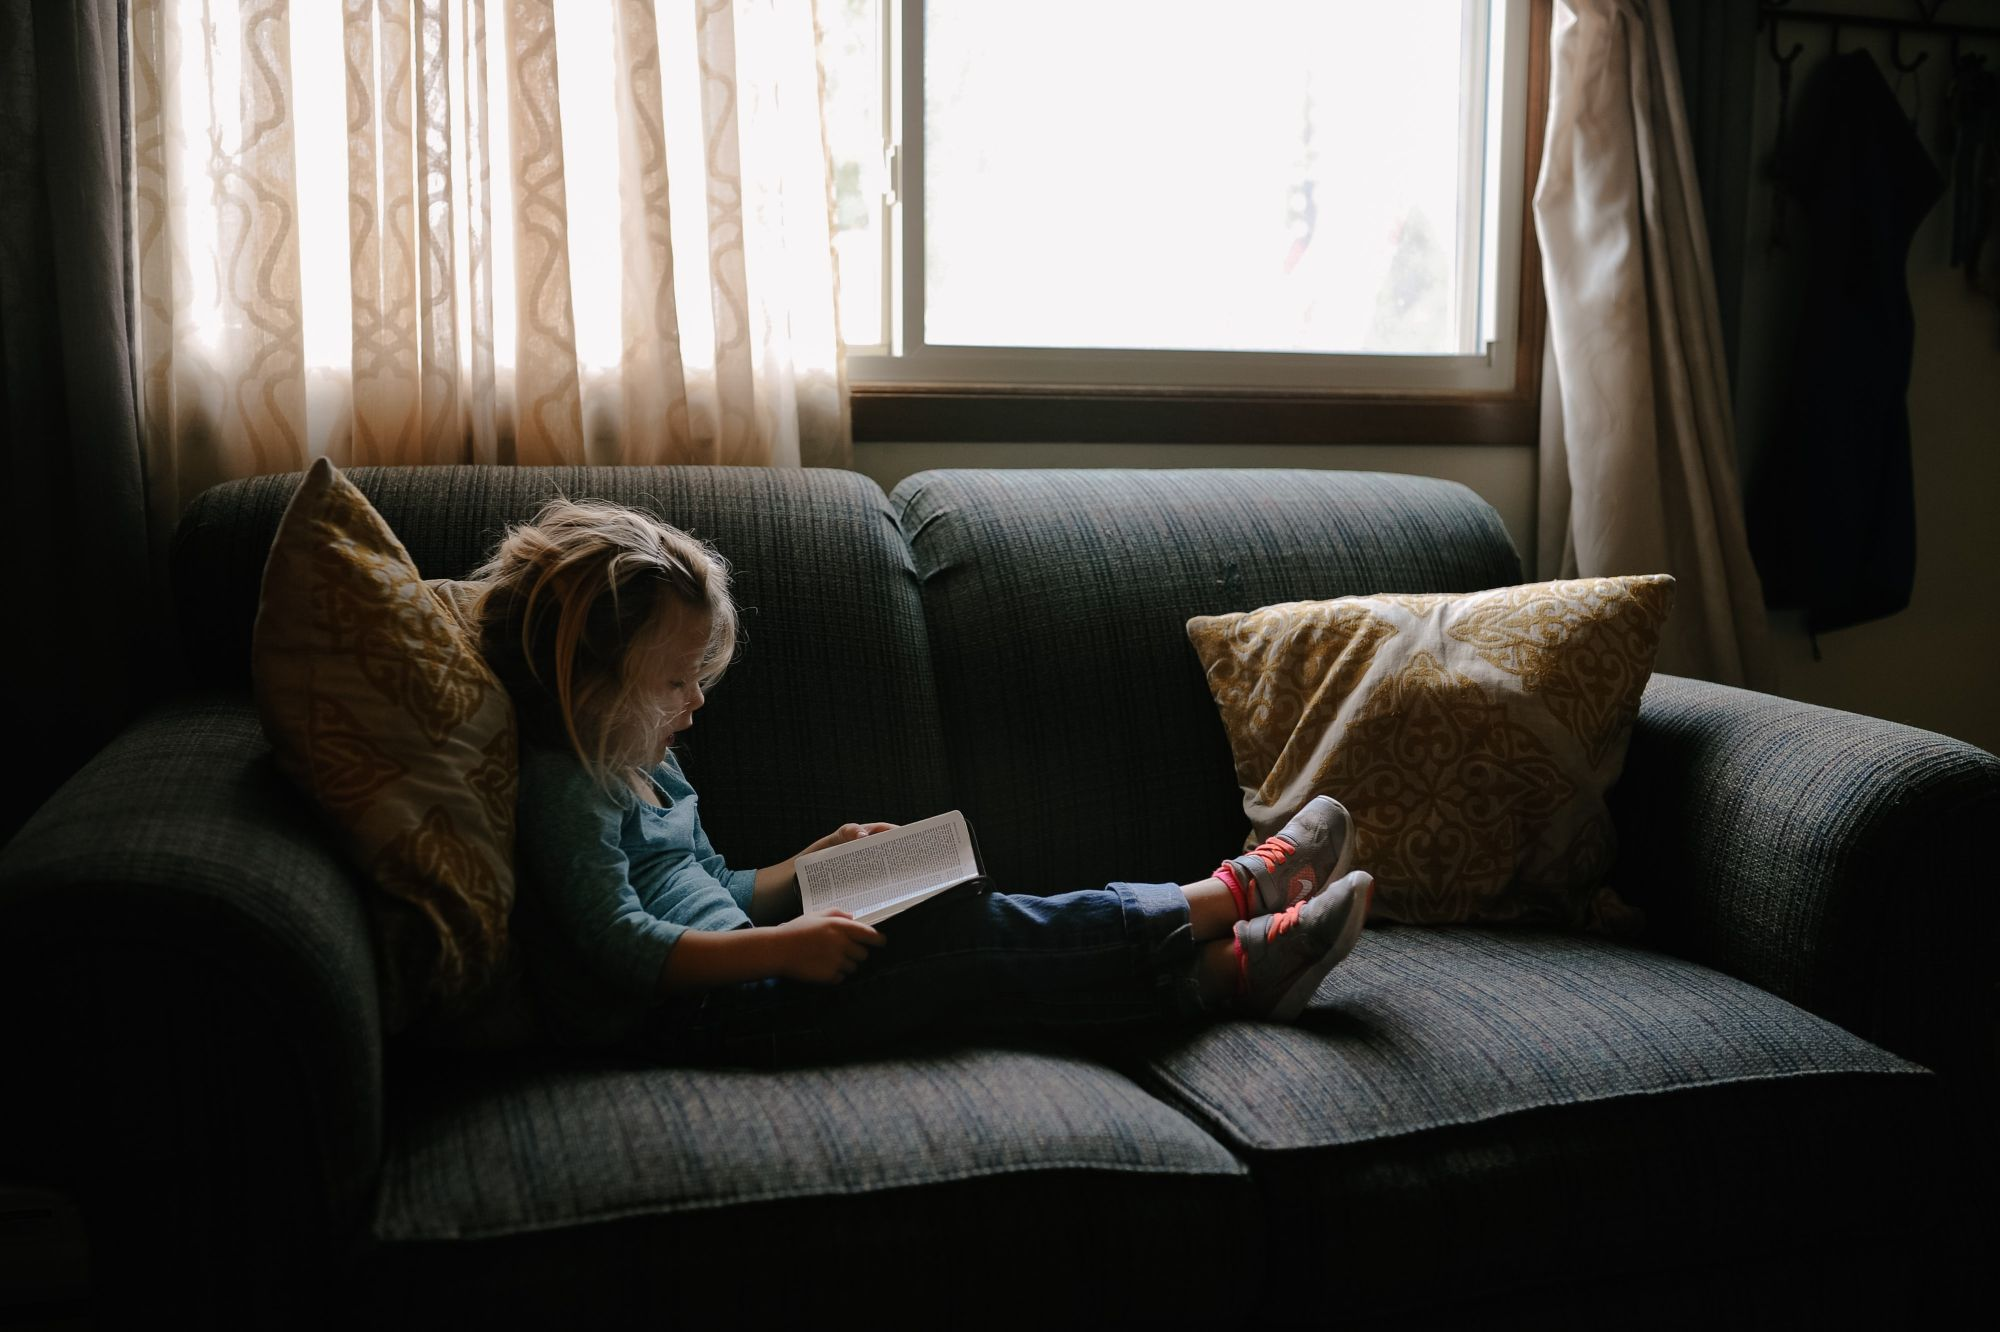 Little girl sitting on sofa reading a book